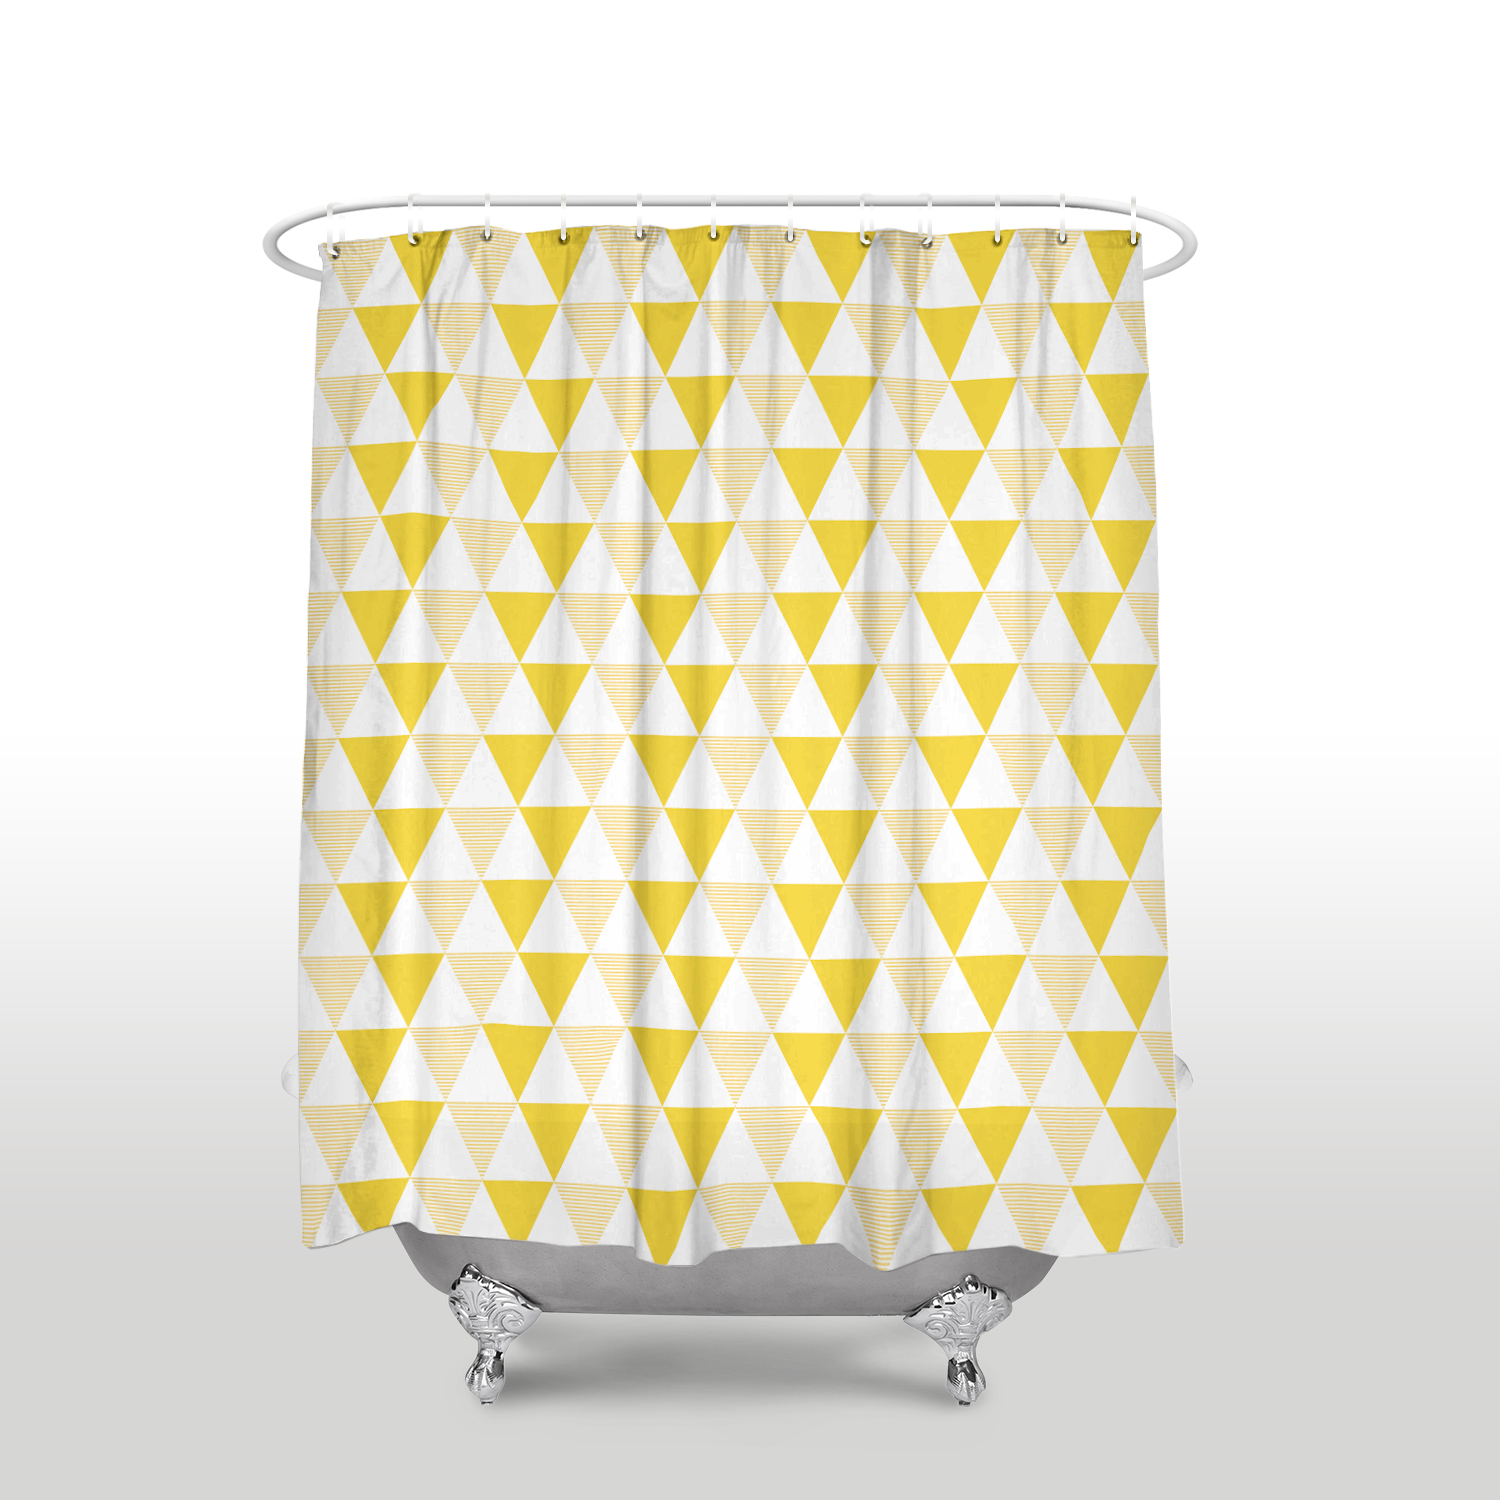 Waterproof Simple Triangles Geometry Printed Shower Curtain Polyester Fabric Yellow White Bathroom Curtains For Home Decorations